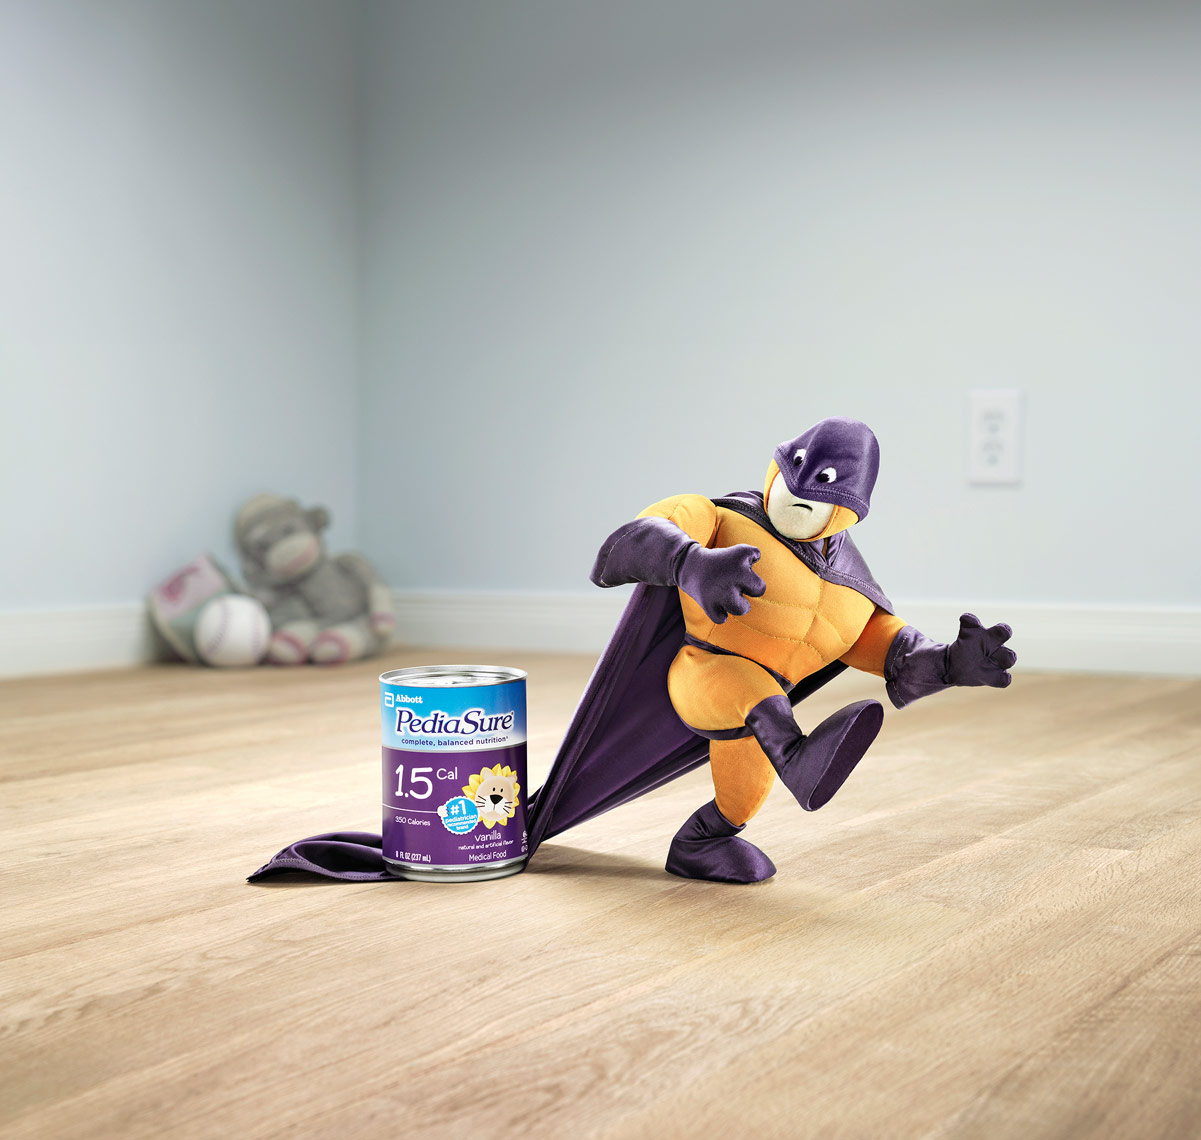 Pediasure - Superhero